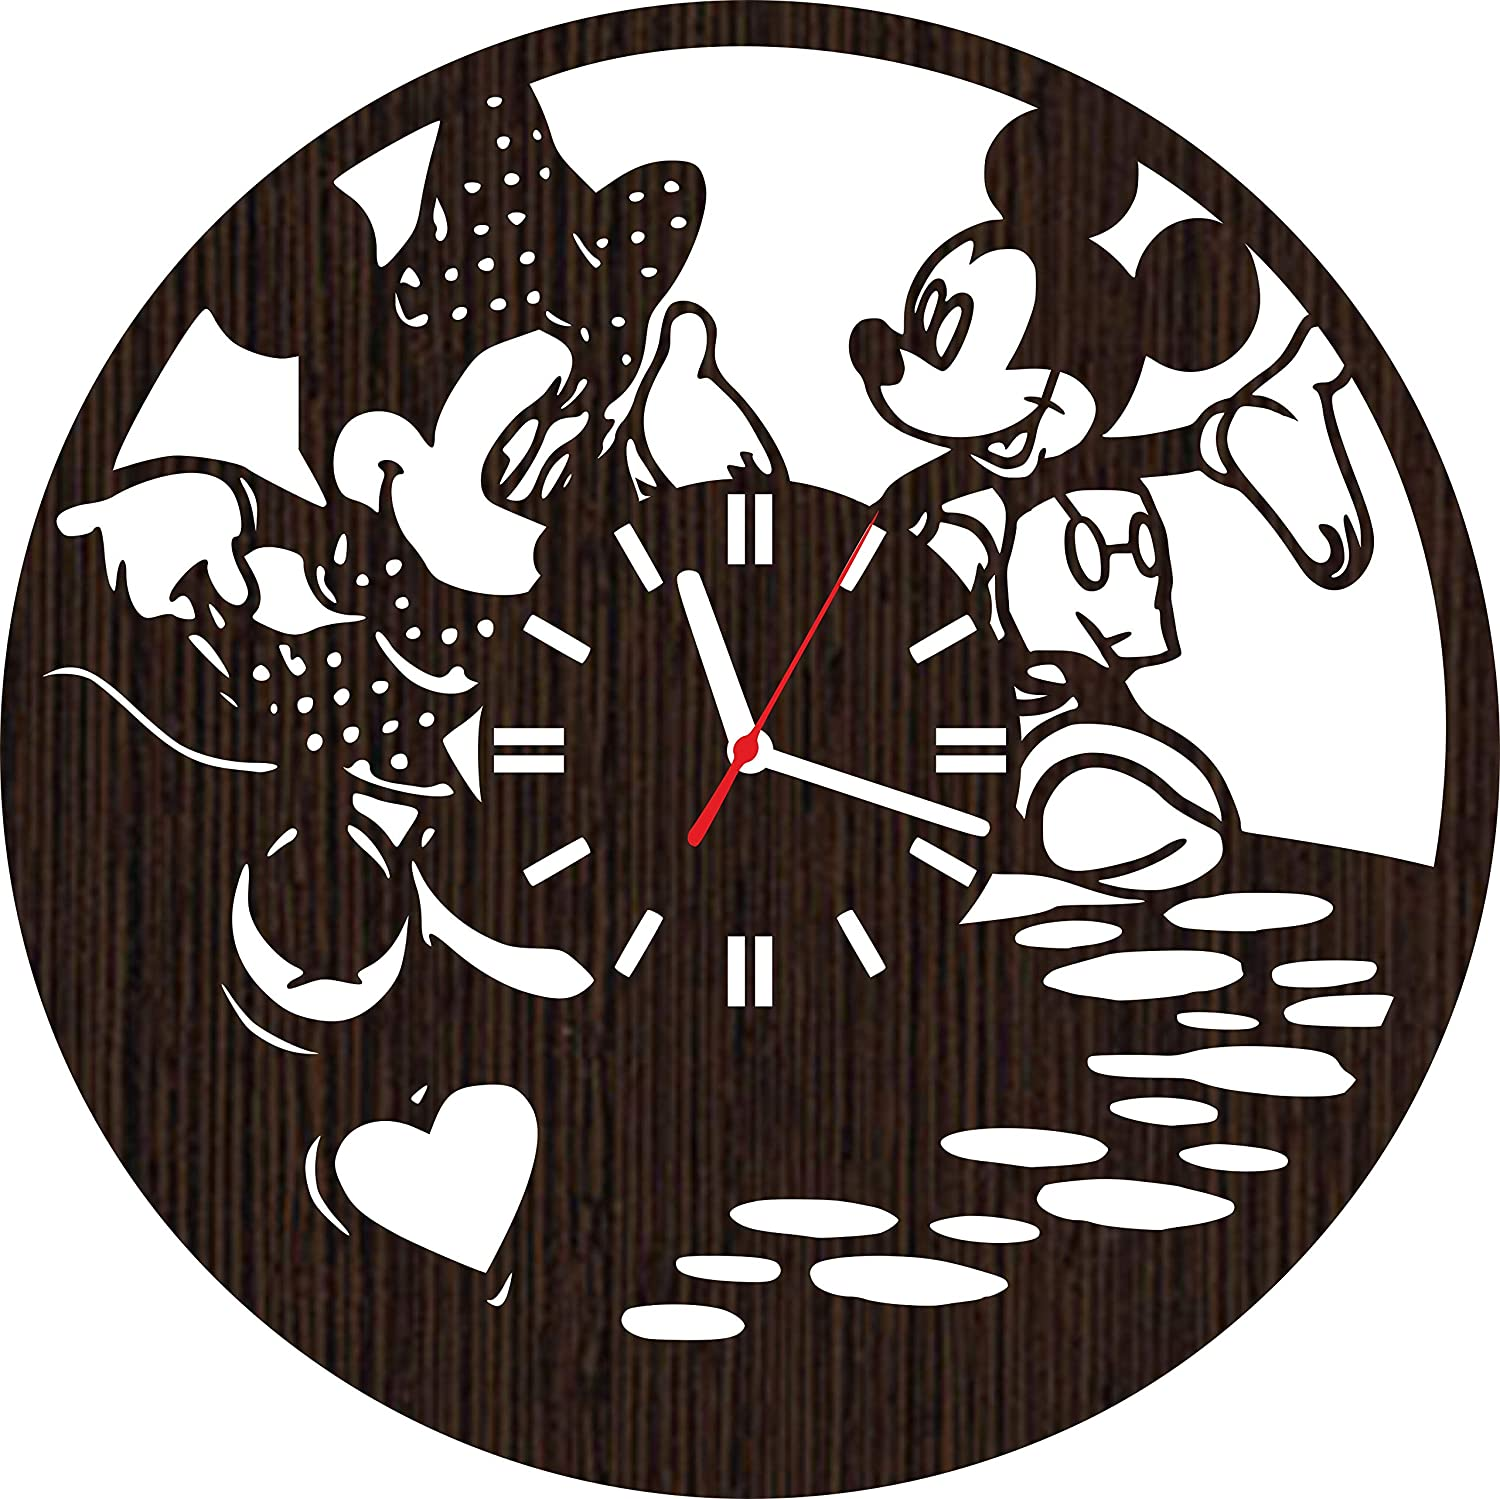 Handmade Wooden Wall Clock Mickey and Minnie Mouse Gifts for Kids Boys Girls Disney Fans | Nursery Home Decor | Birthday Party Decorations | Baby Room | Valentines Day Lovelygift4you